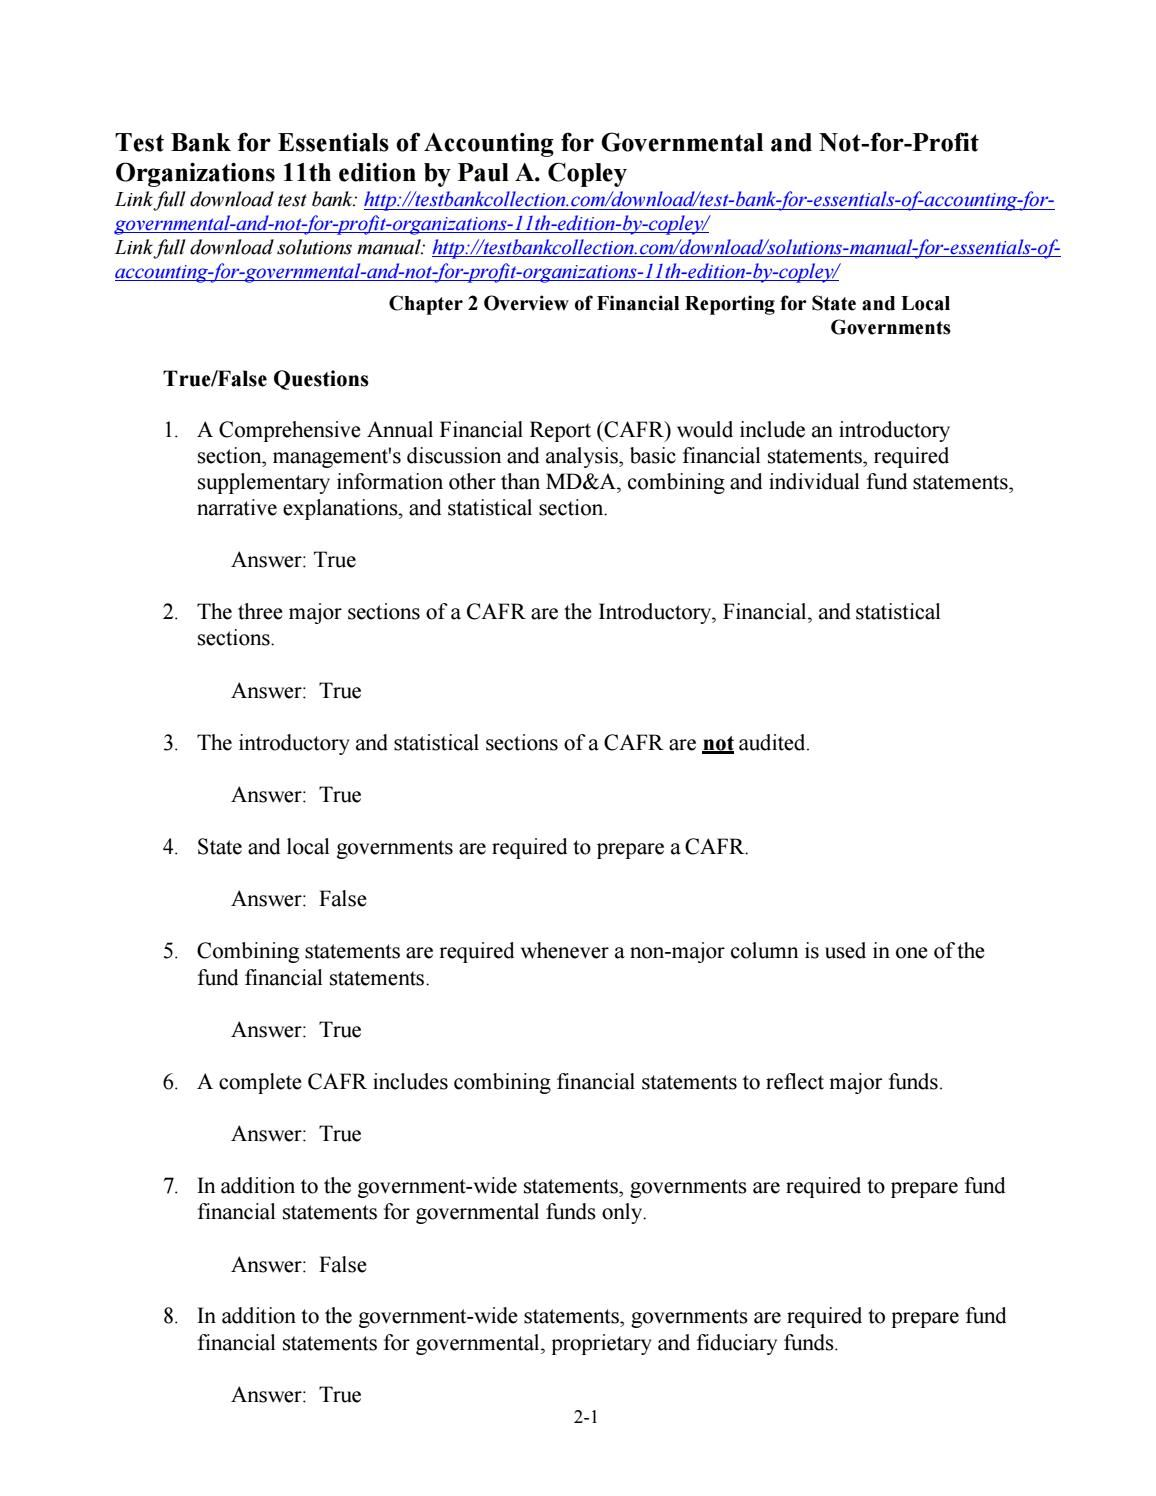 Test bank for essentials of accounting for governmental and not for profit  organizations 11th editio